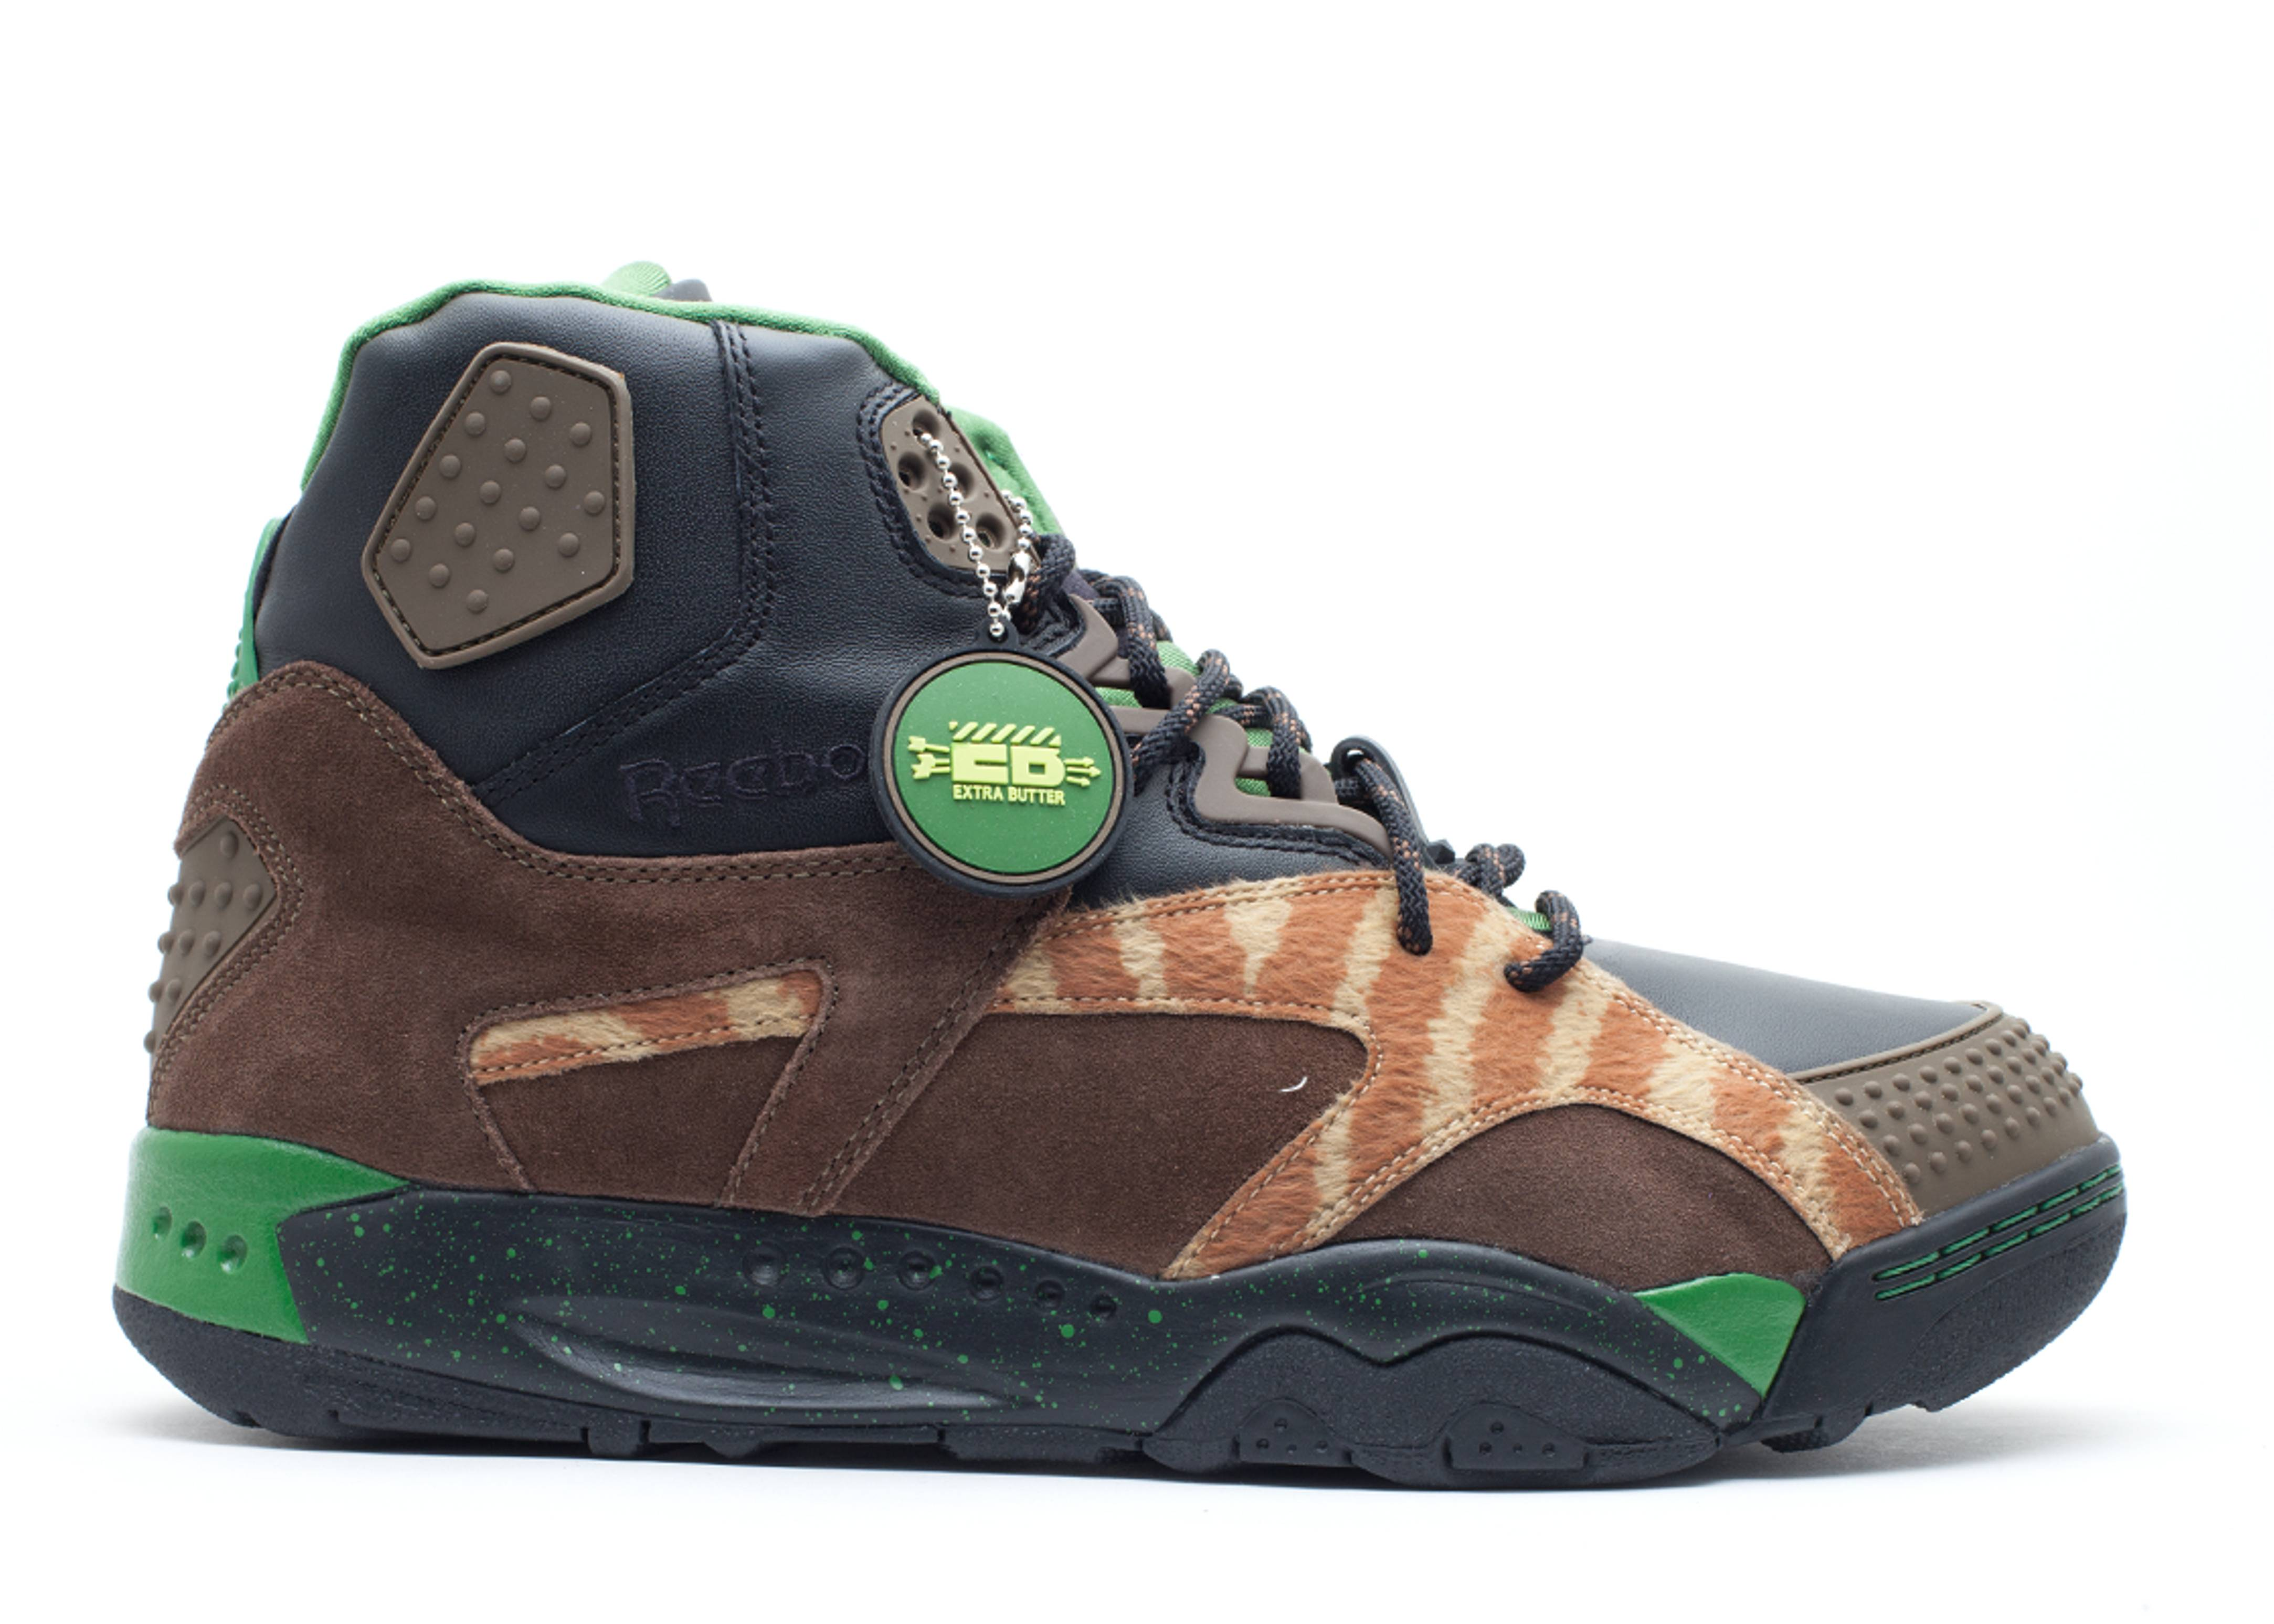 """oxt pump mid """"extra butter """"sheriff achoo"""""""""""